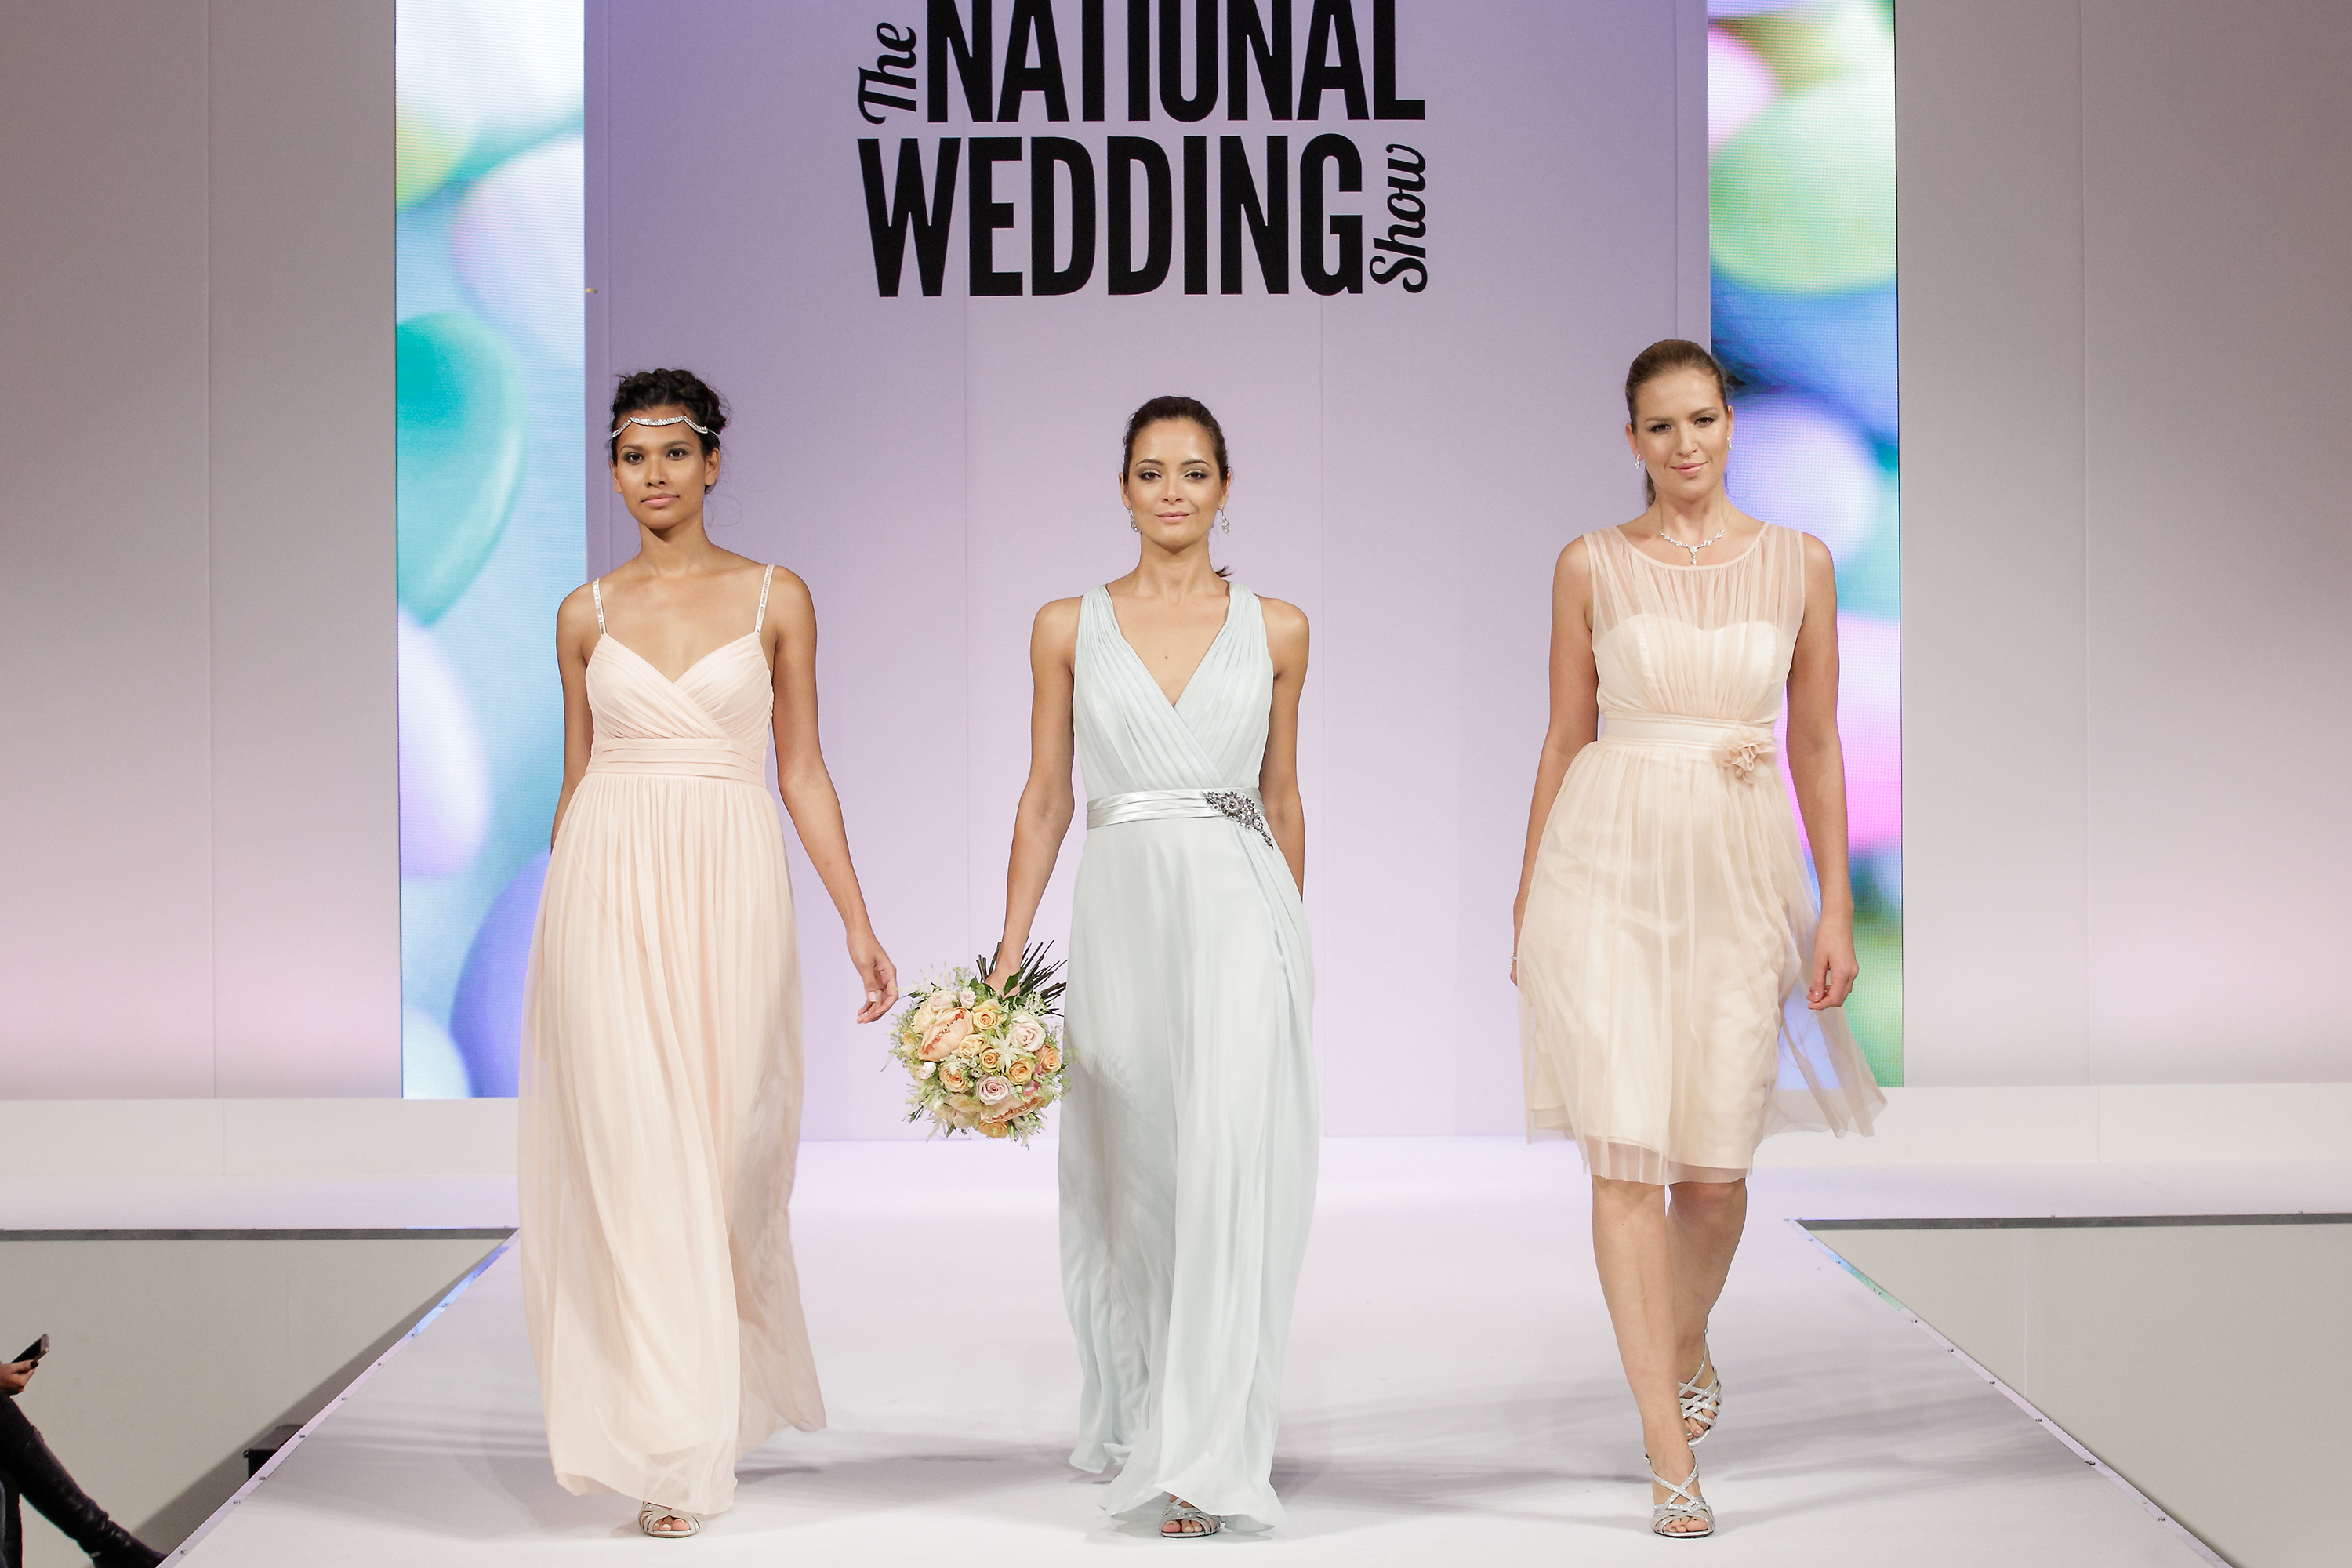 Wedding Show | Get Up To 50 Off National Wedding Show Tickets